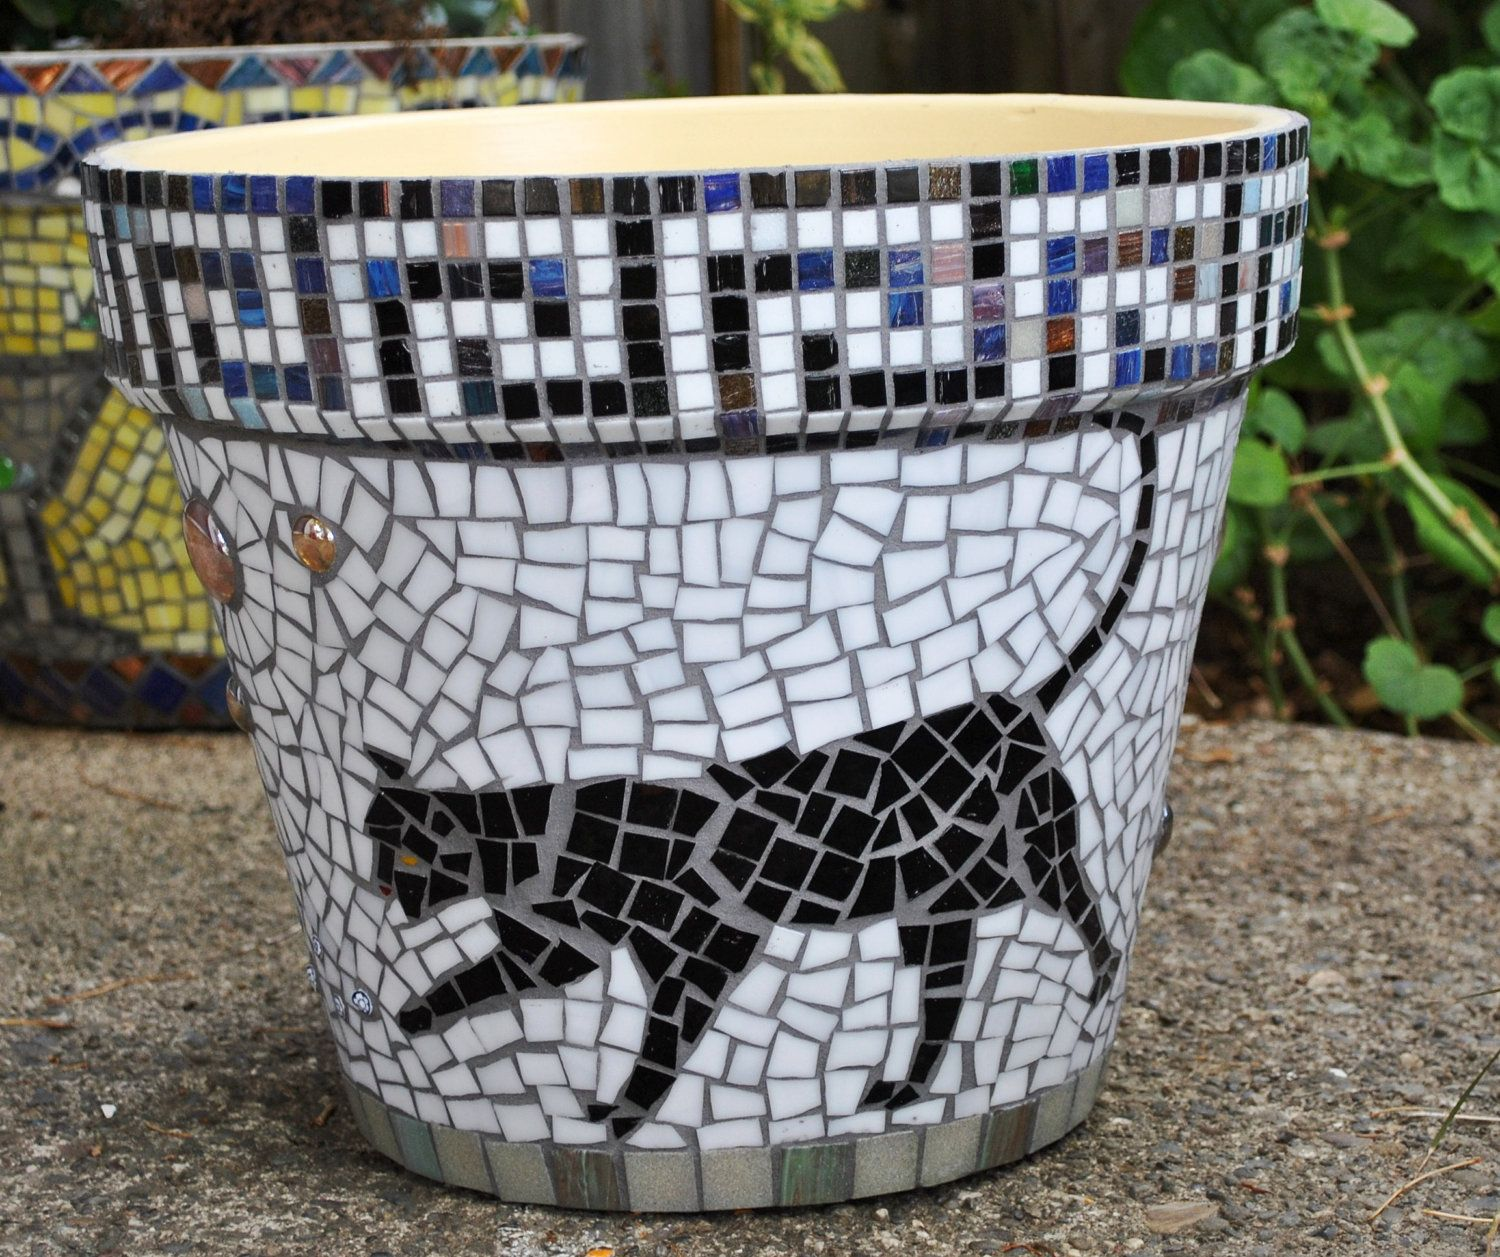 stained glass & tile mosaic garden container - black cats-greek